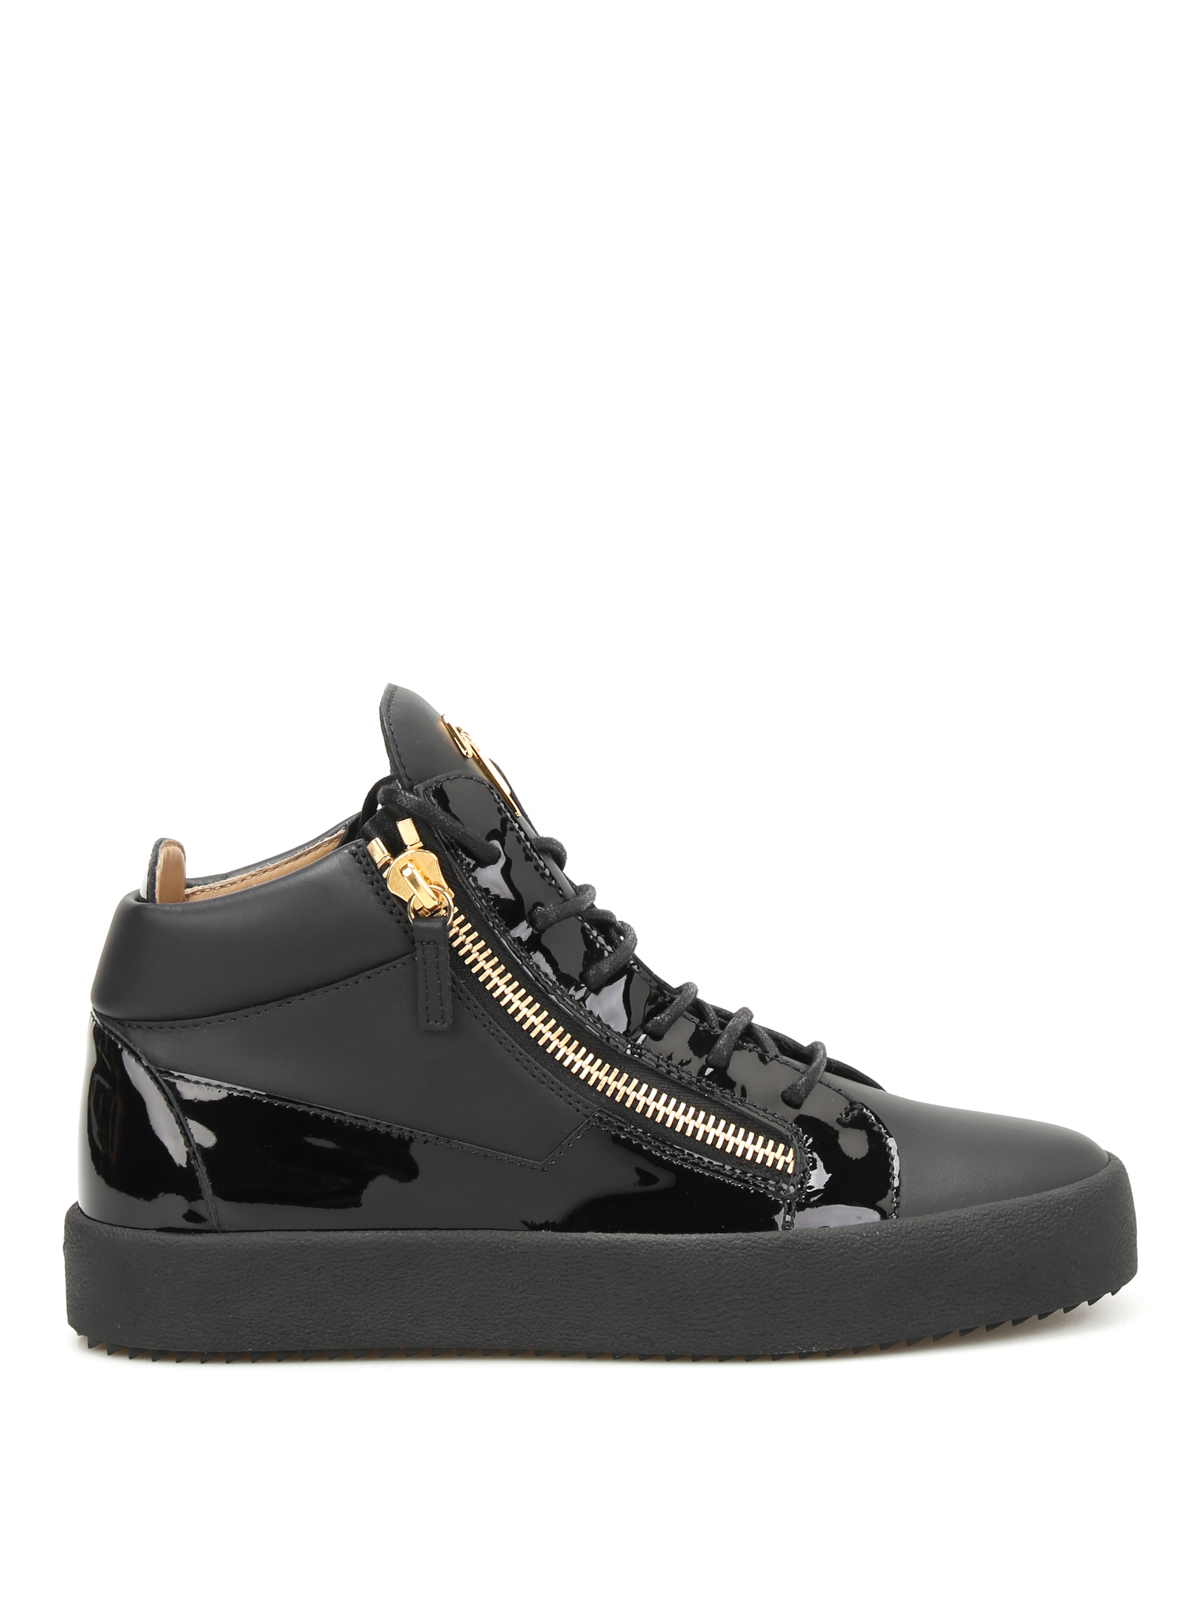 May London leather sneakers by Giuseppe Zanotti